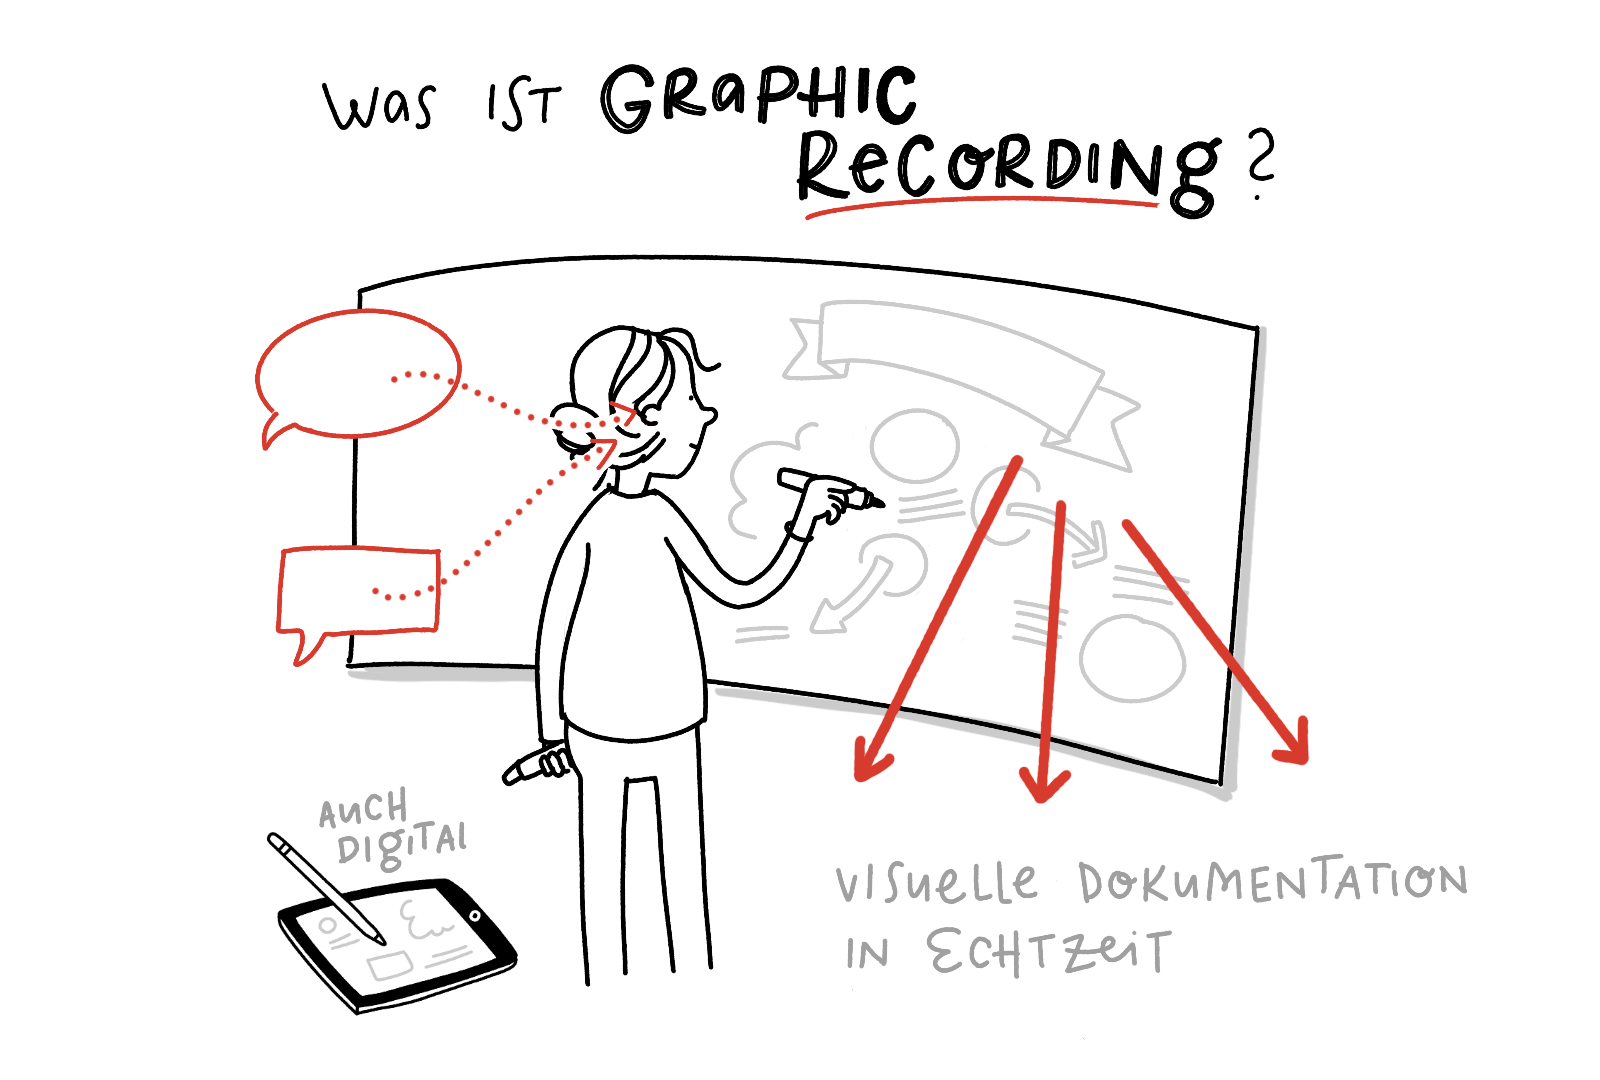 Sketchnotes – Was ist Graphic Recording